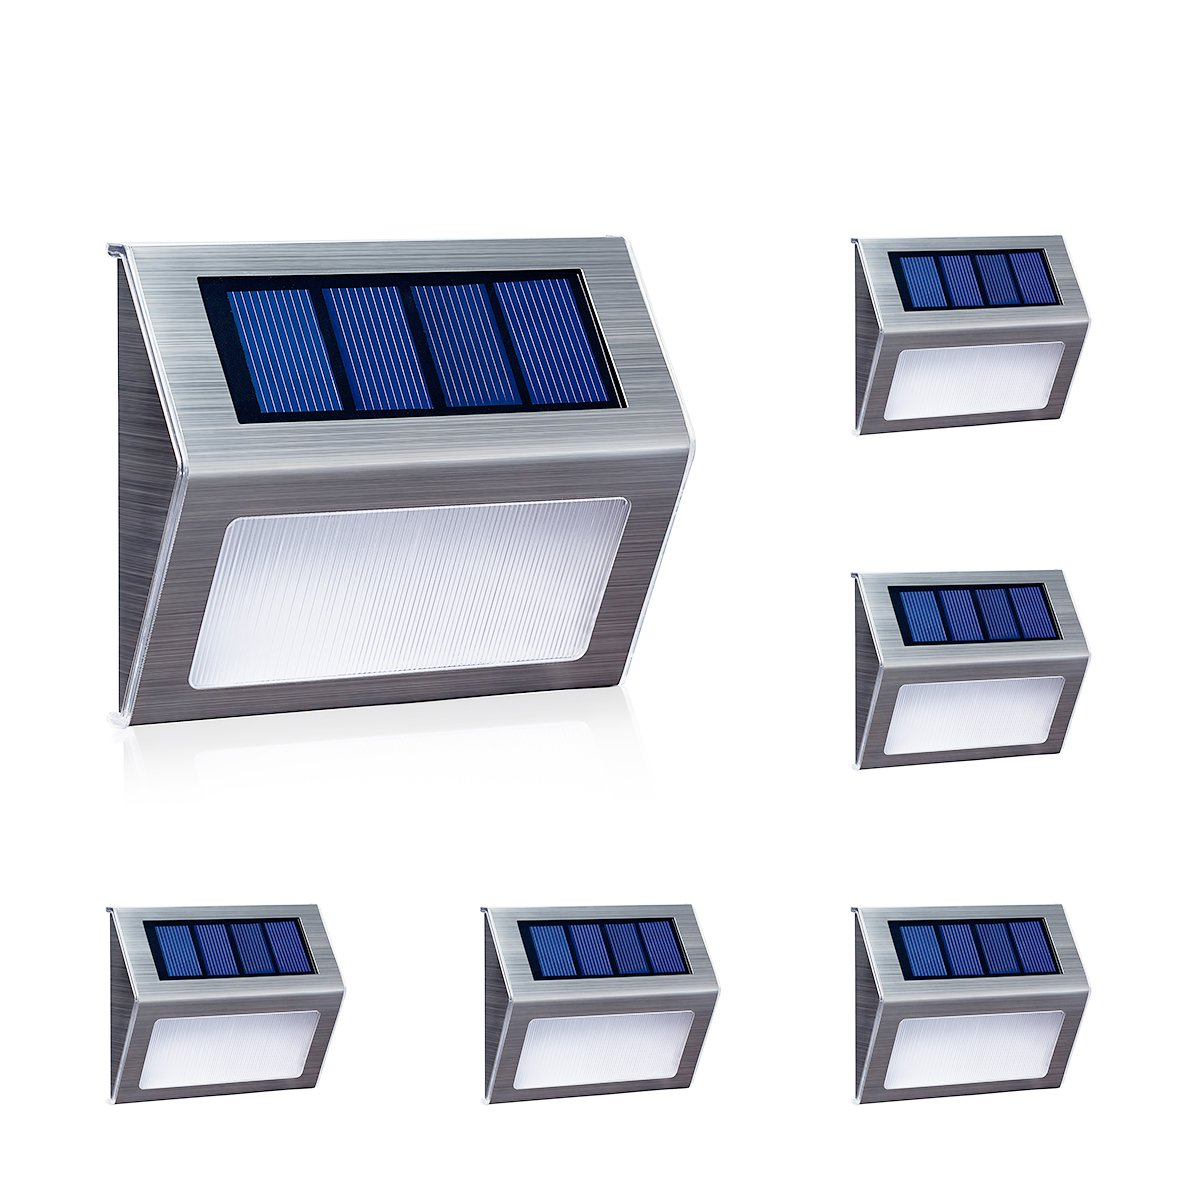 [Warm Light] Solar Lights for steps decks pathway yard stairs fences, LED lamp, outdoor waterproof, 6 Pack by XLUX